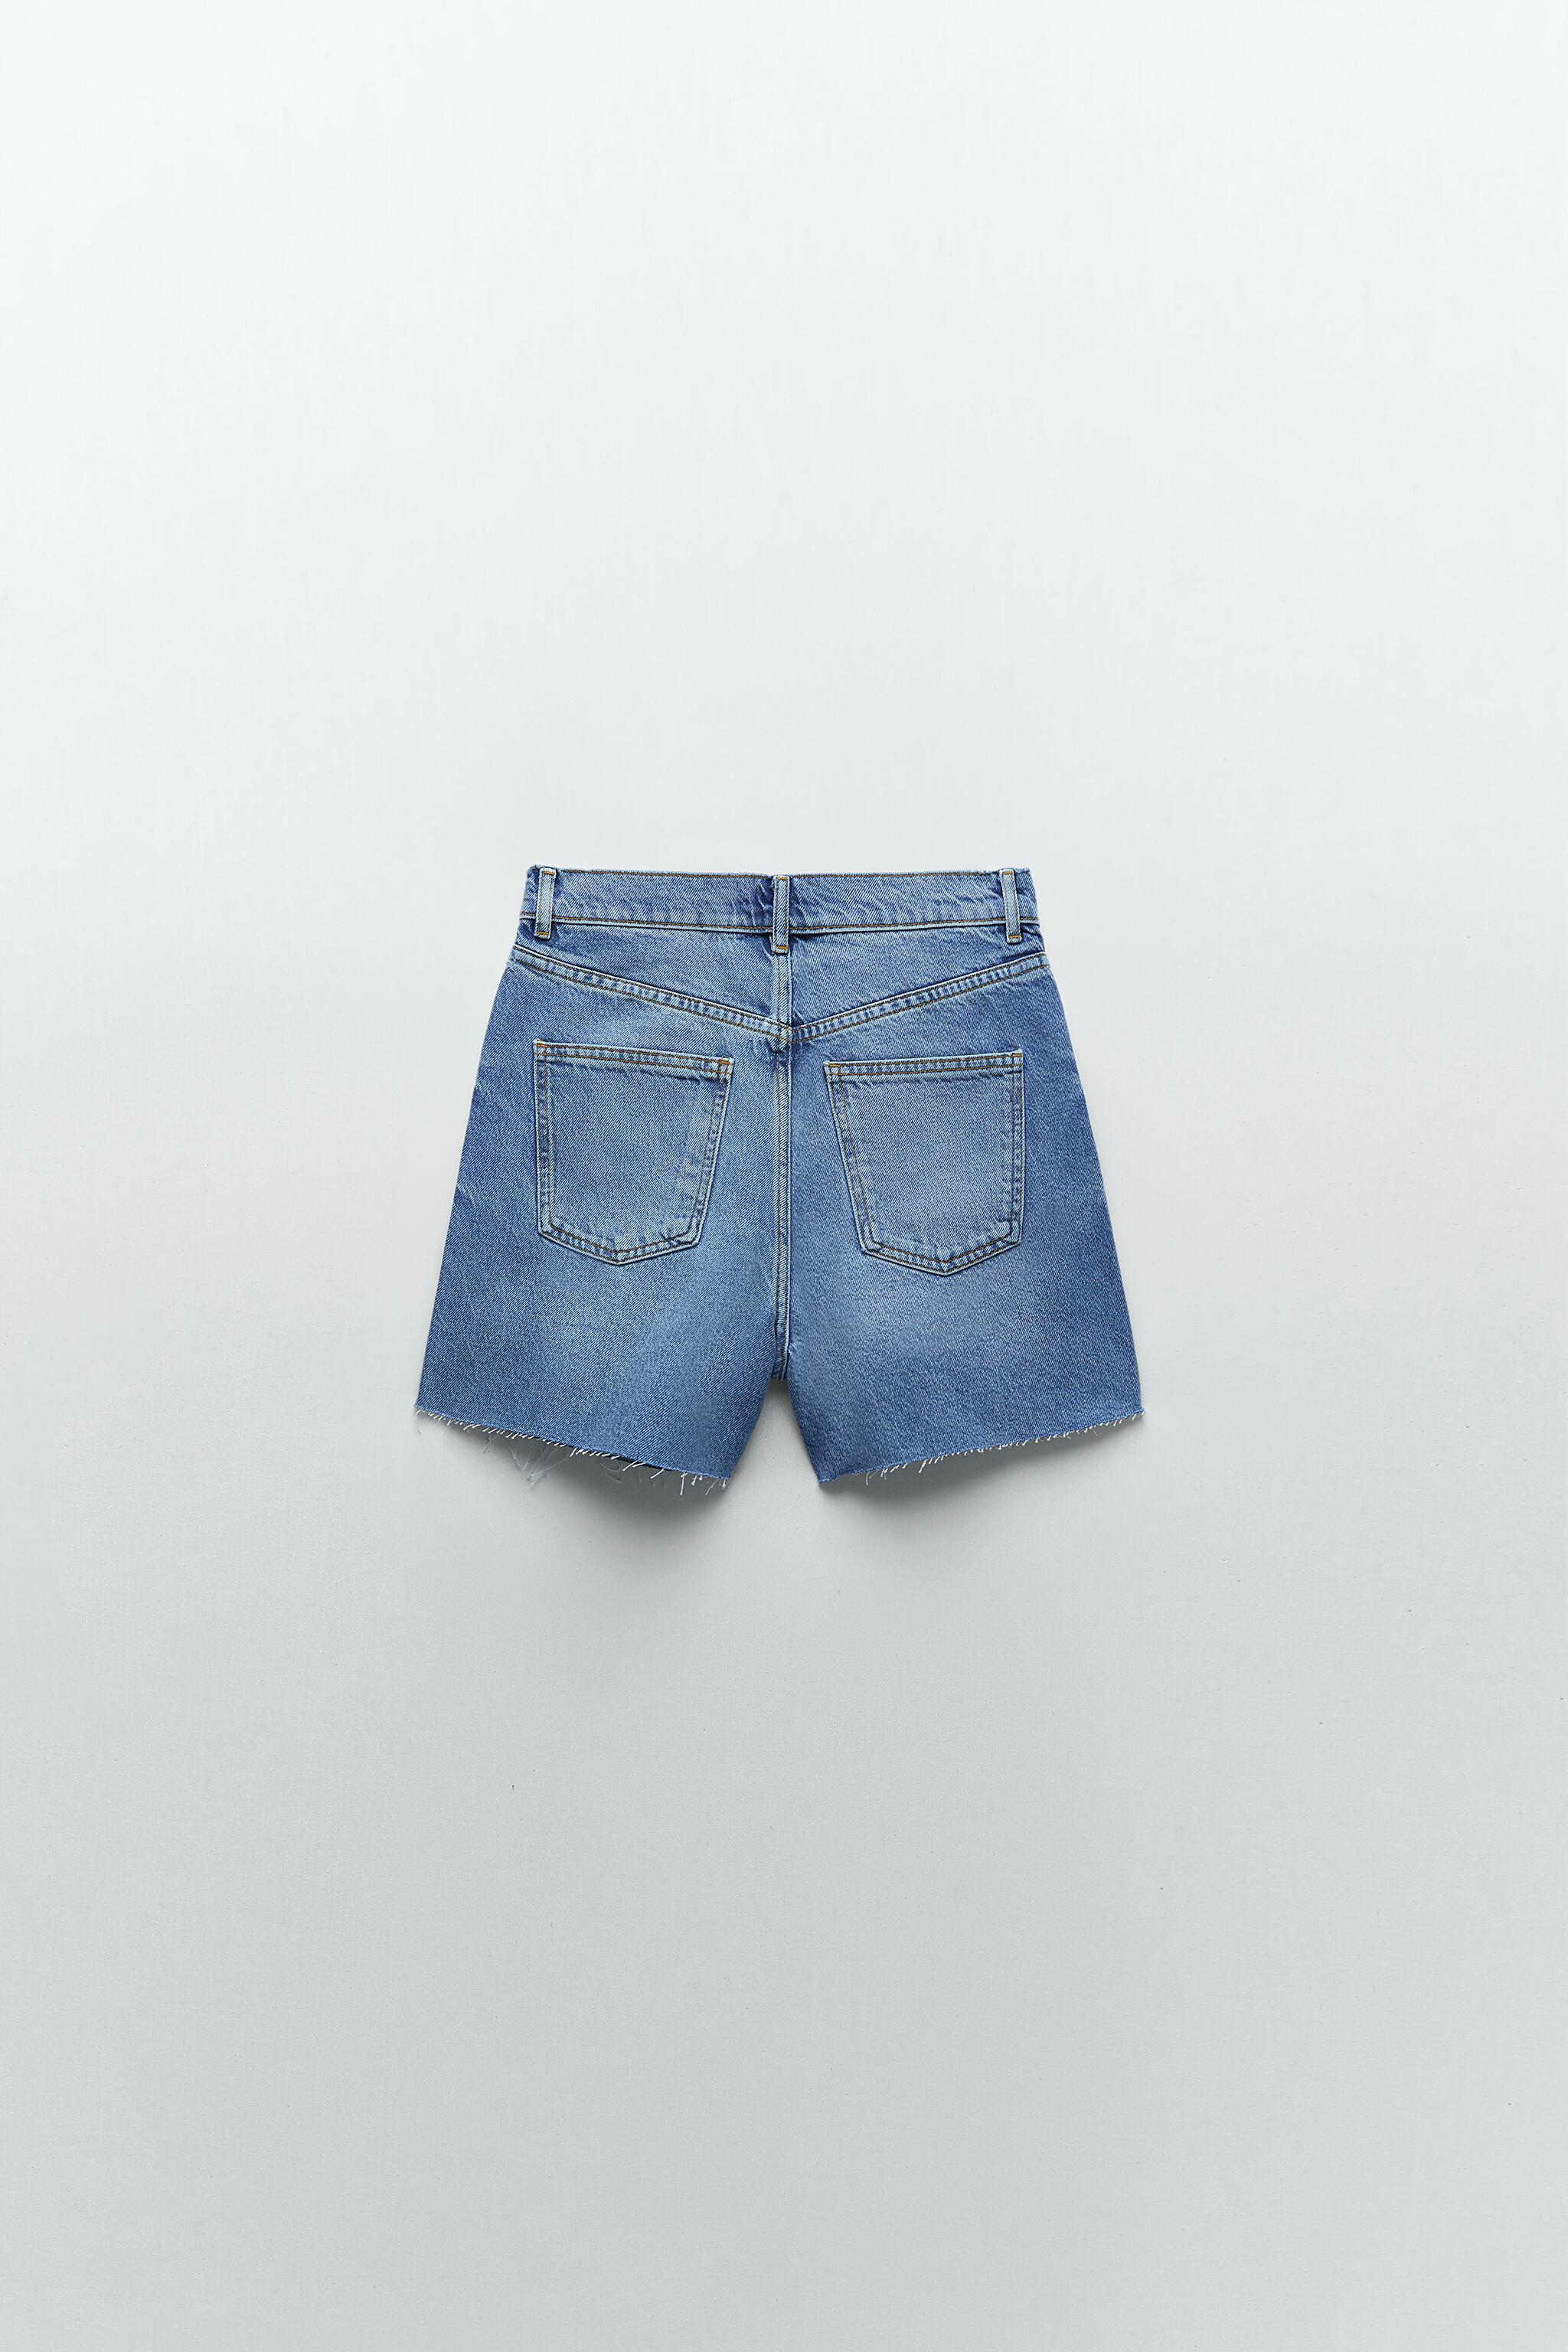 ZW THE '90S SHORTS 2